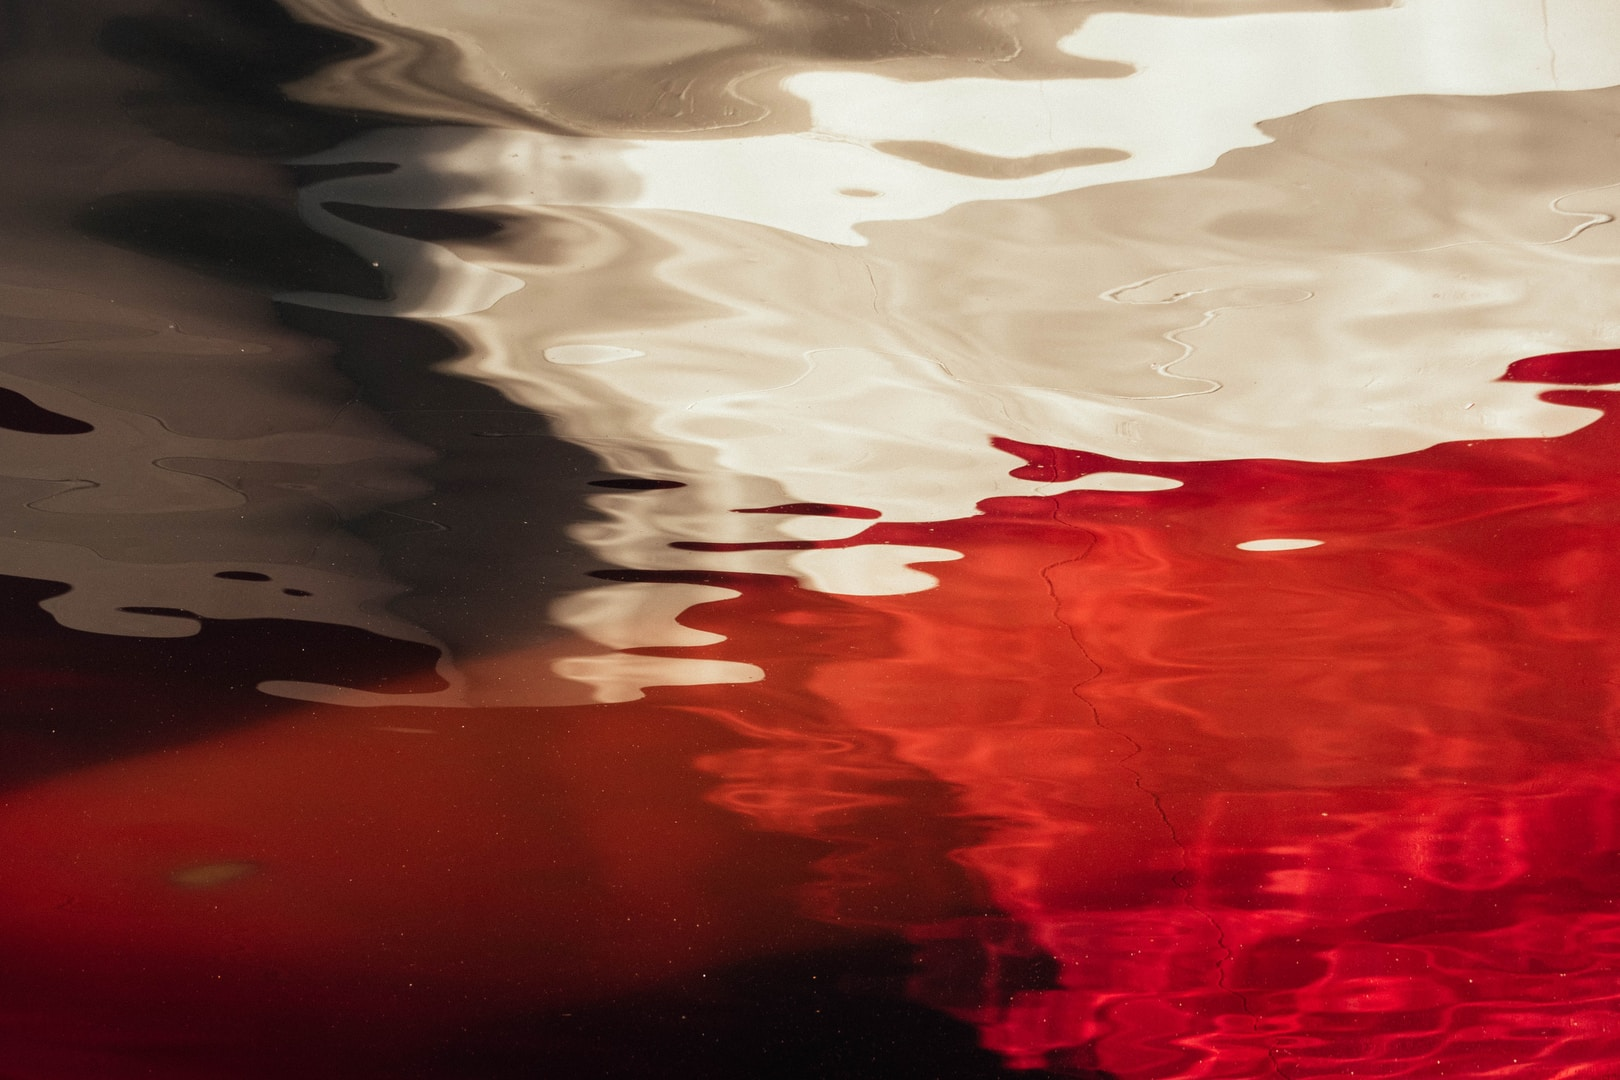 white and red fluid